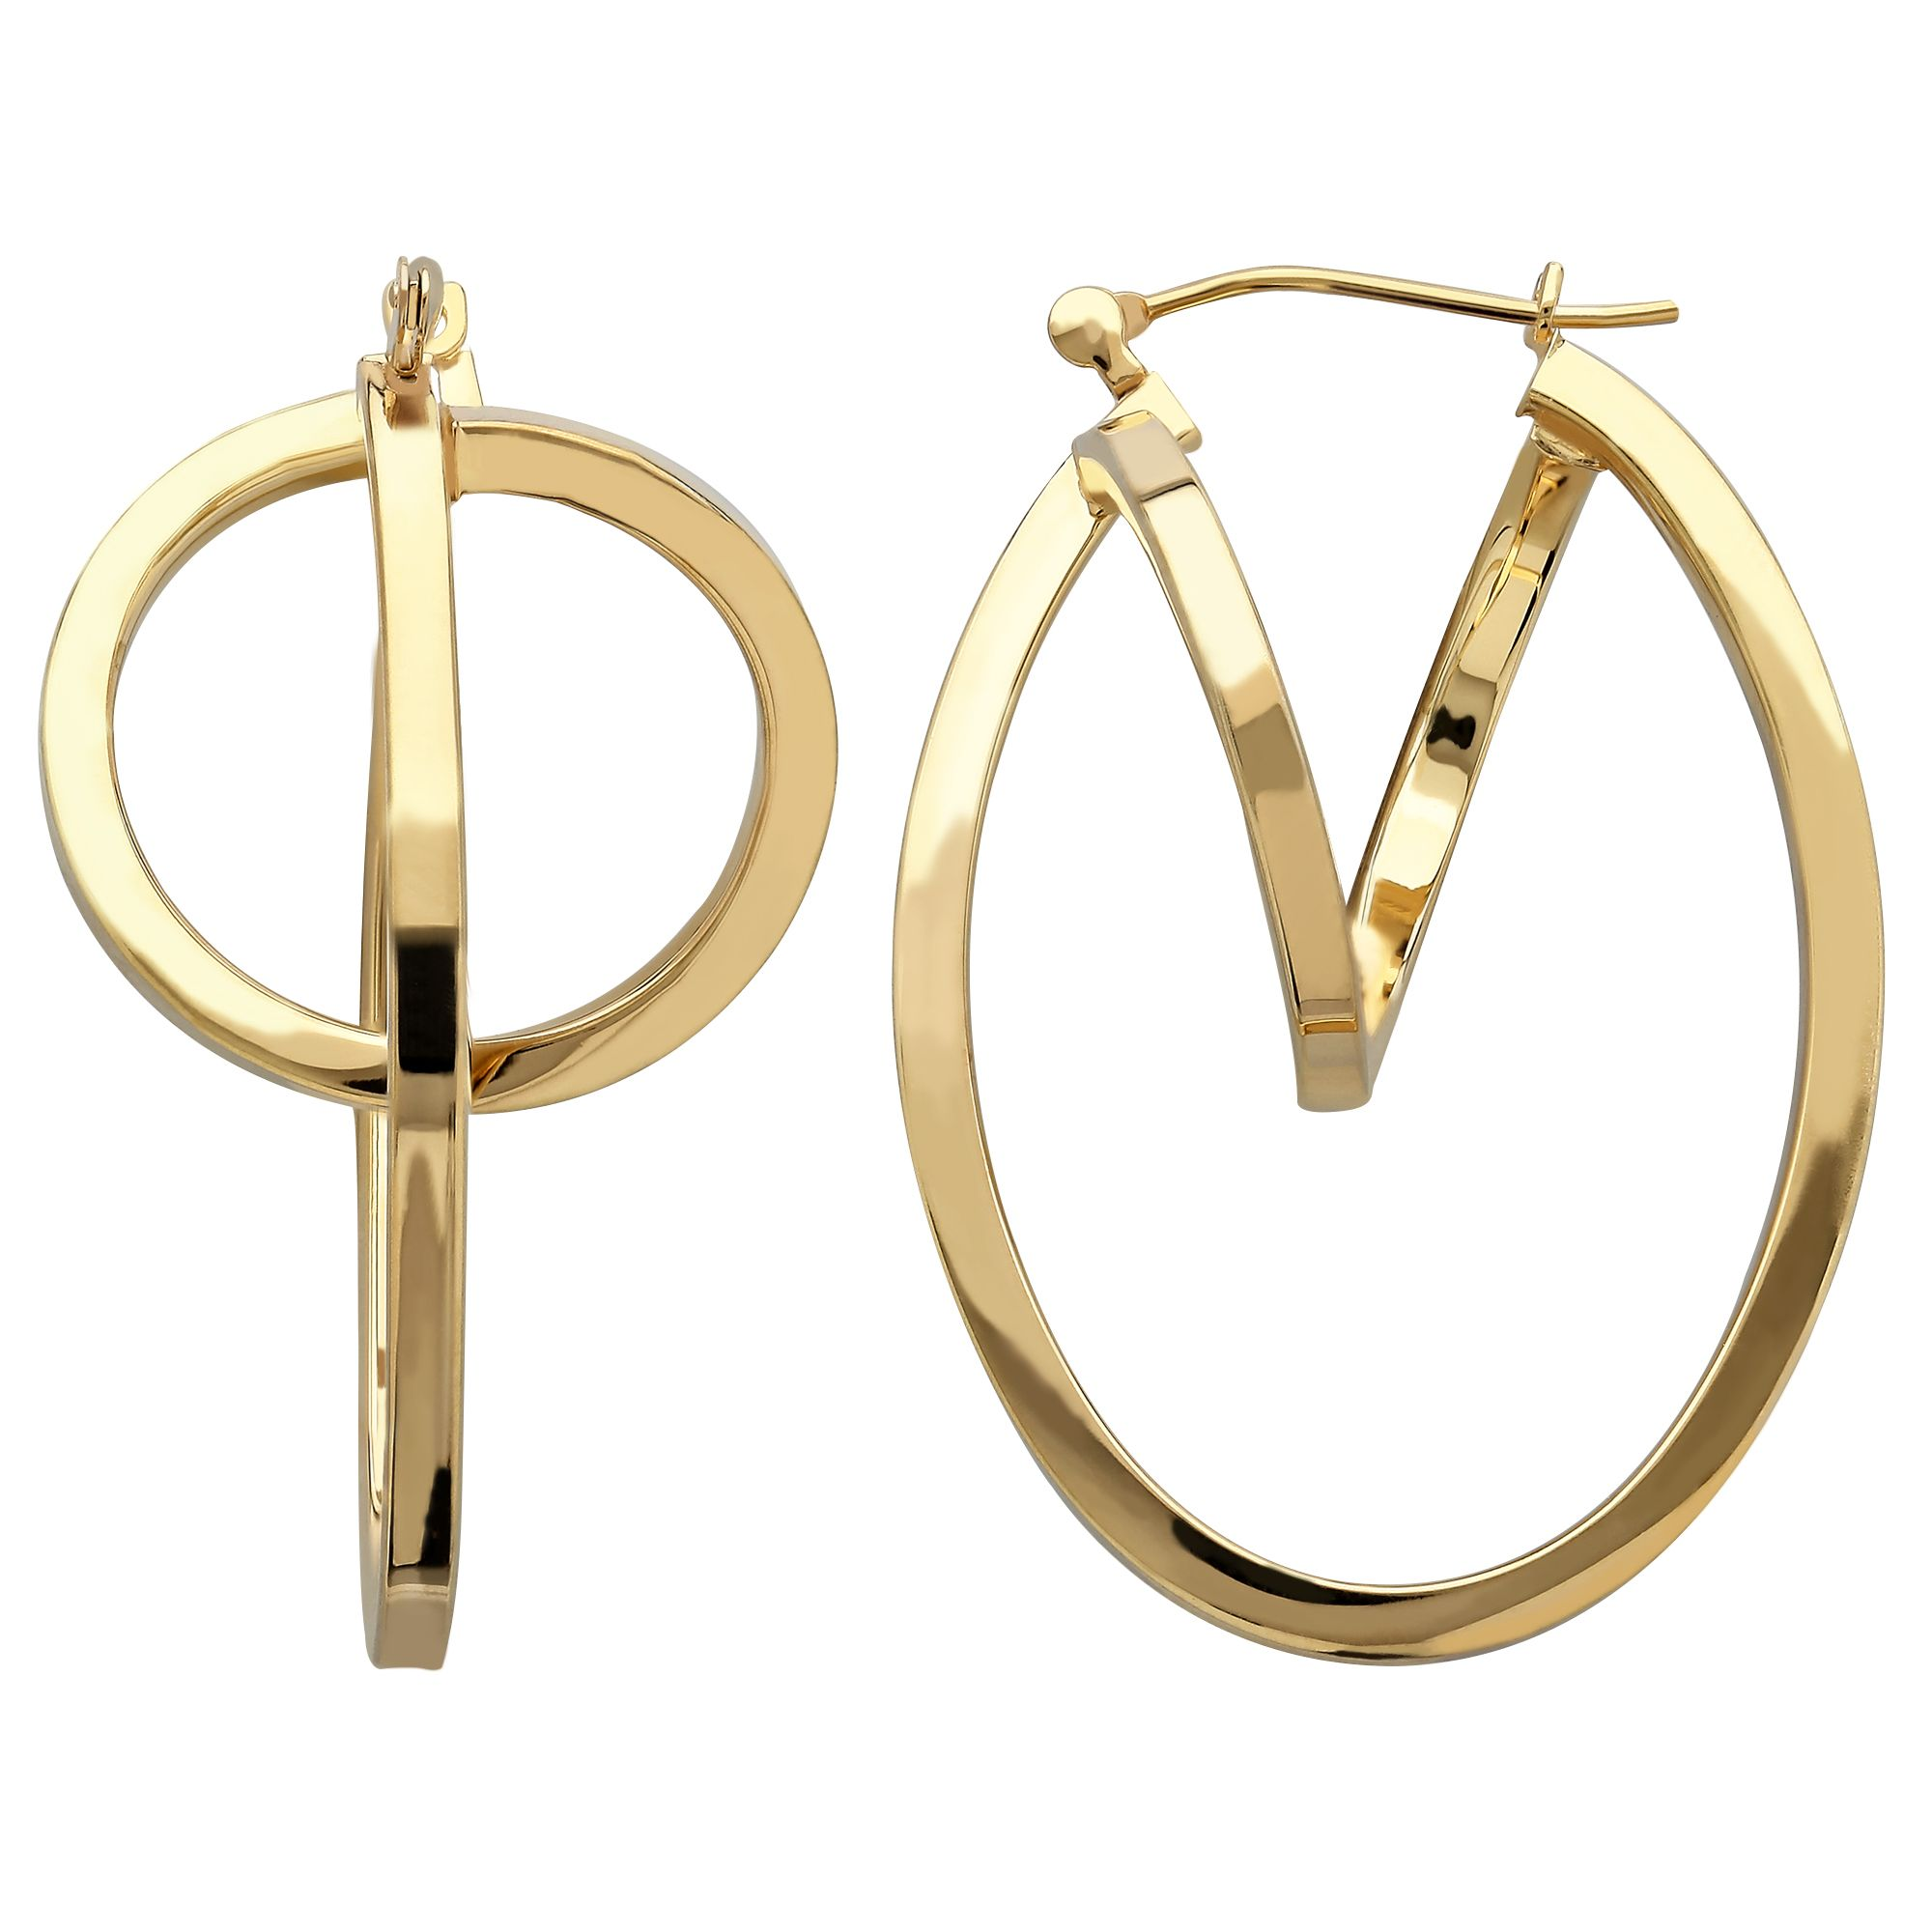 Obsessed. 14K Gold Eclipse Hoop Earrings from @Bon-ton #MayisGoldMonth #Gold #JumpinThroughHoops #MIGM #Earrings #Hoops